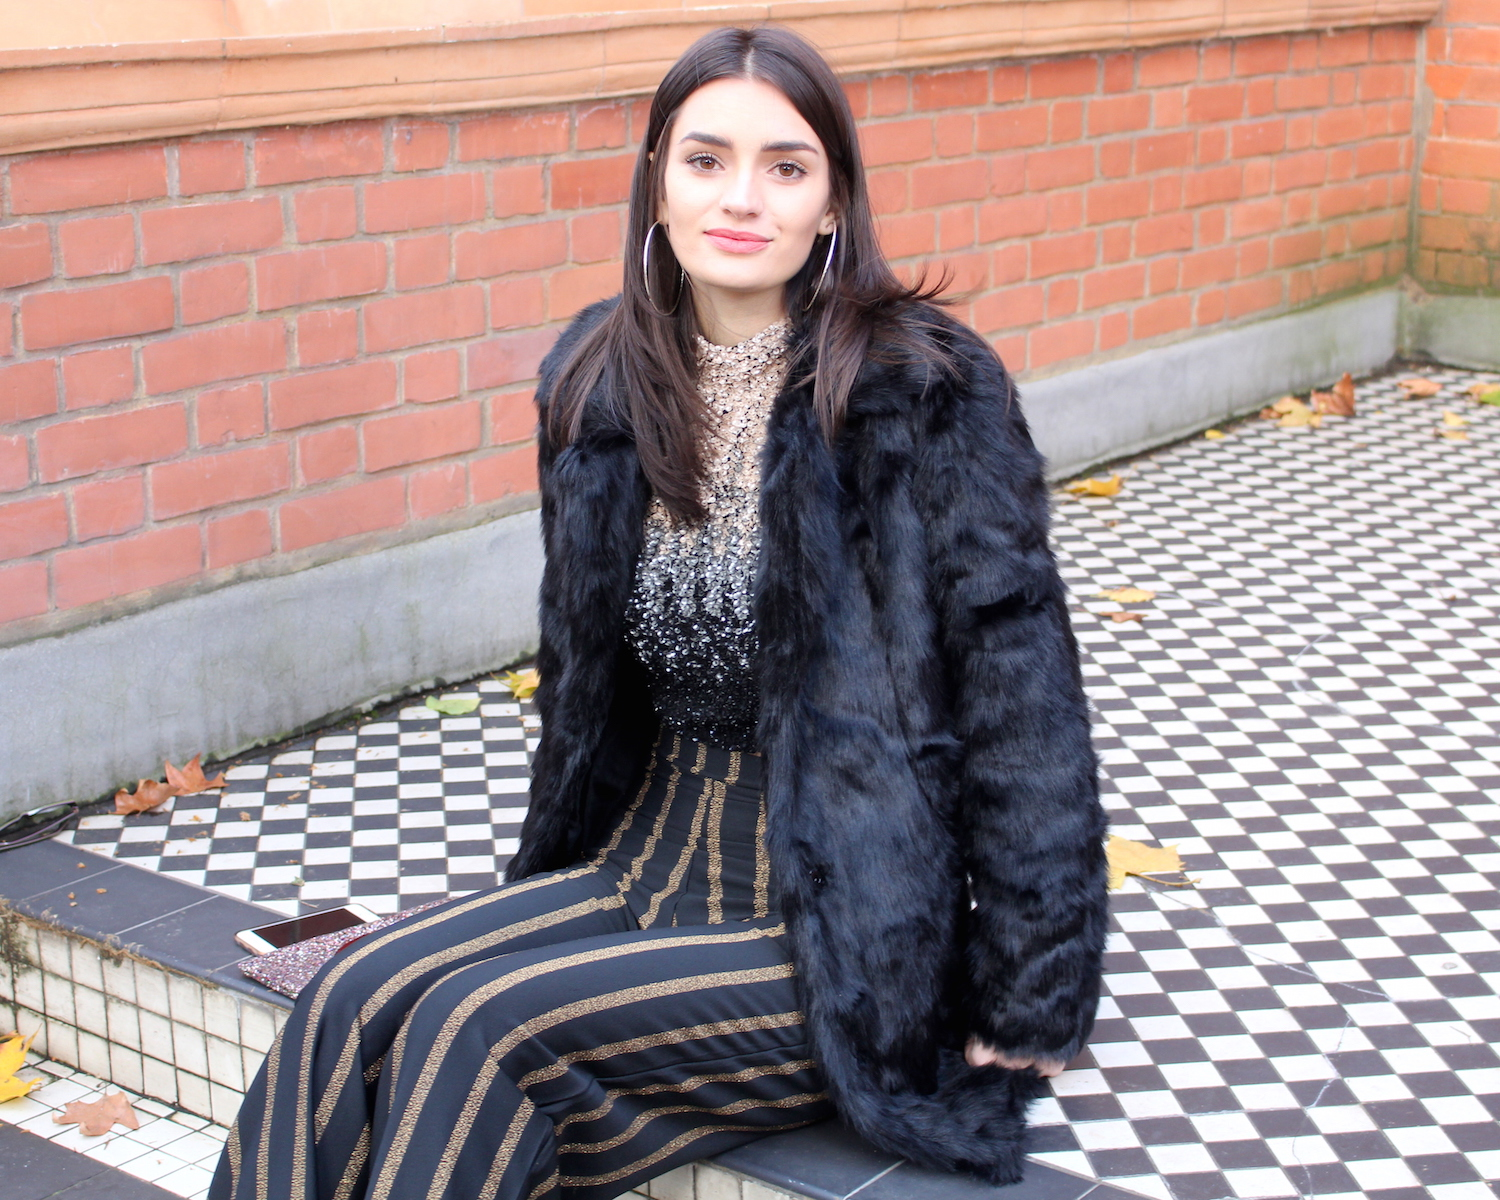 peexo fashion blogger wearing sequins and faux fur